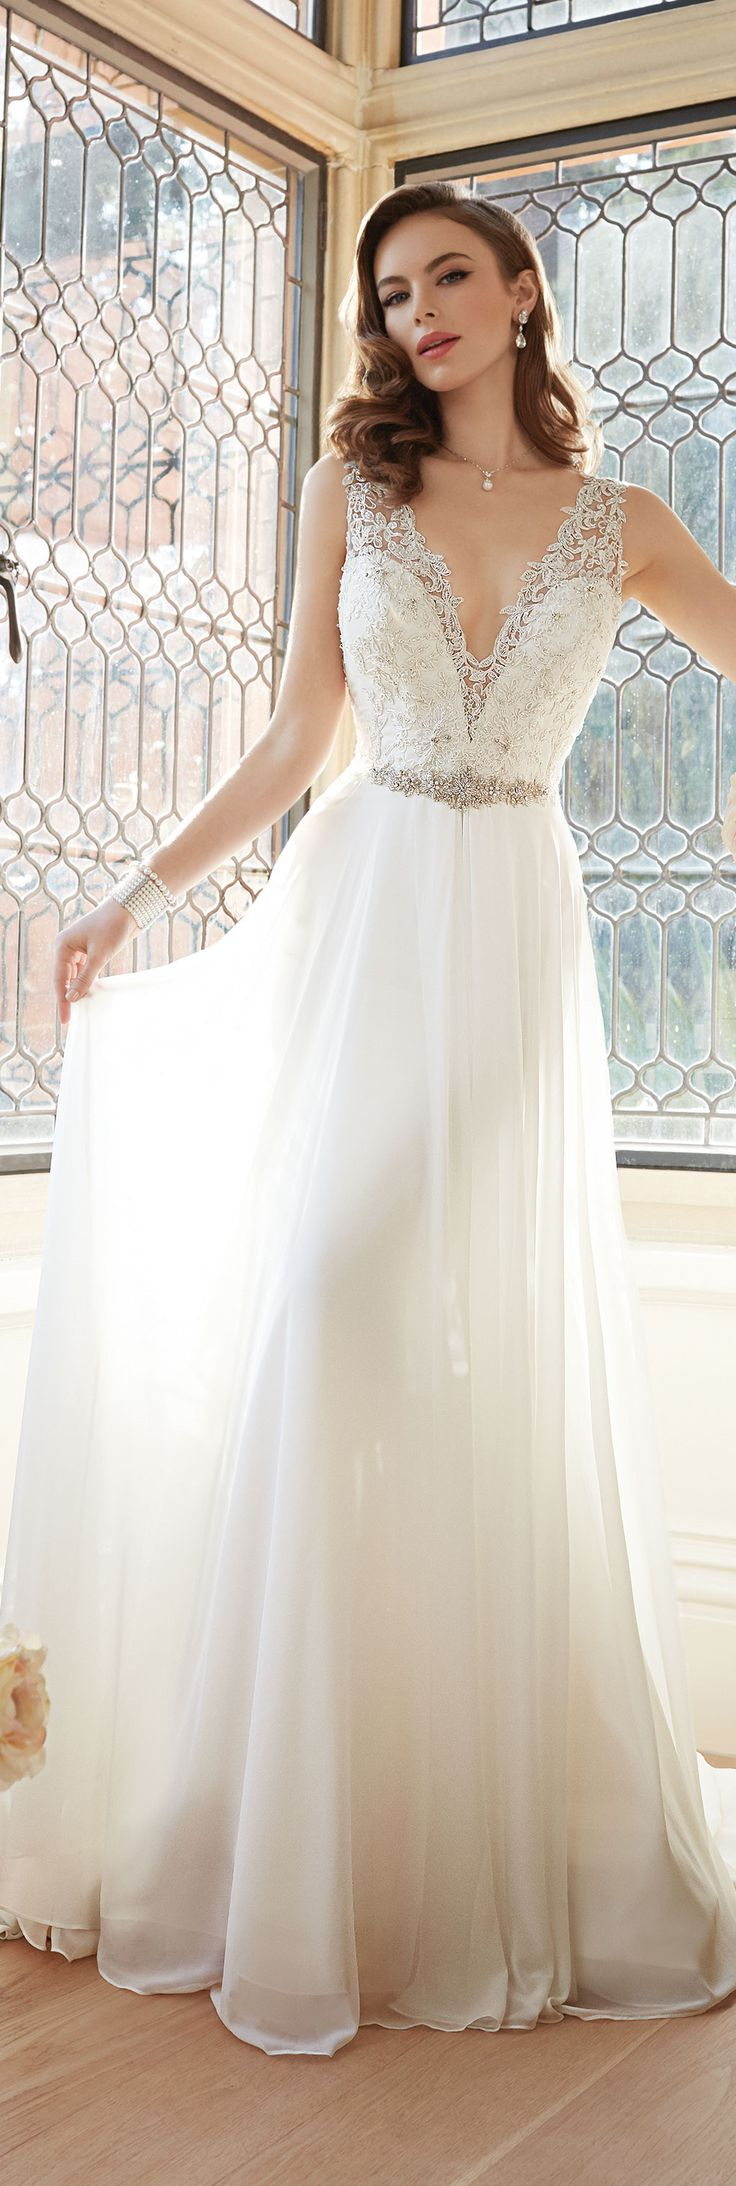 The Sophia Tolli Spring 2016 Wedding Dress Collection - Style No. Y11633 - Augusta #chiffonweddingdress